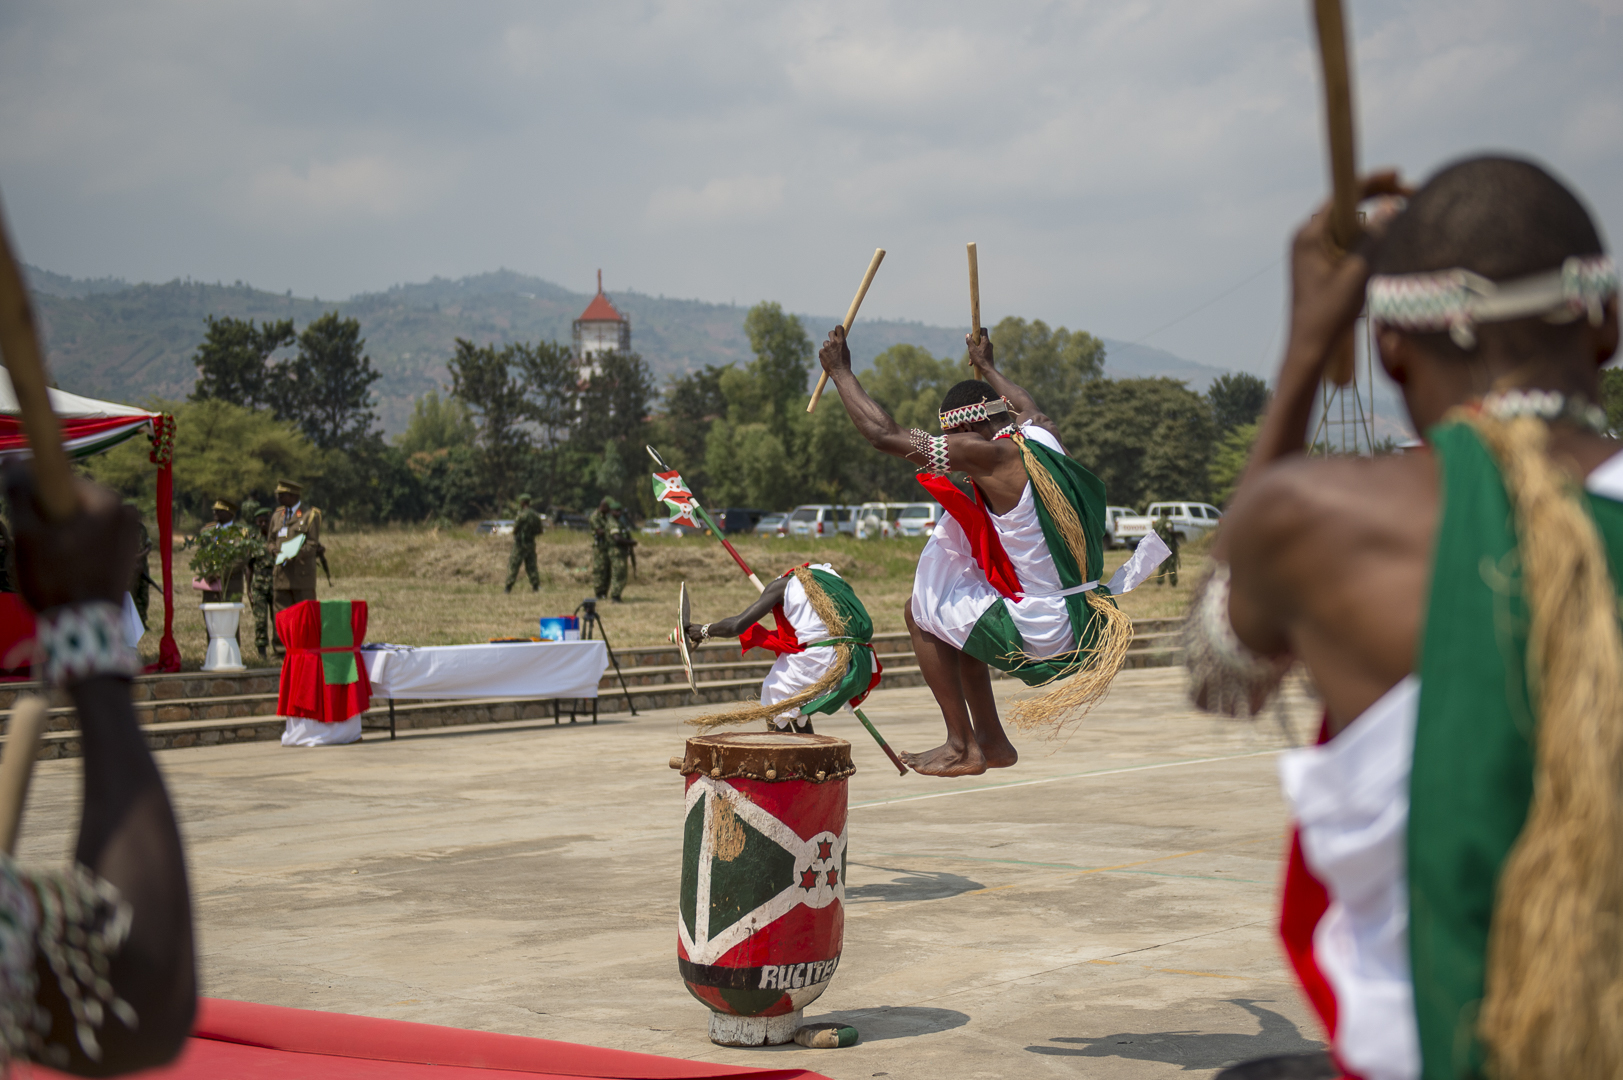 Members of the Royal Drummers of Burundi perform at the graduation of the Burundi National Defence Force Senior Command and Staff College in Bujumbura, Burundi, July 19, 2019. The Royal Drummers of Burundi use drums made from hollowed tree trunks covered with animal skins. (U.S. Air Force Photo by Senior Airman Codie Trimble)